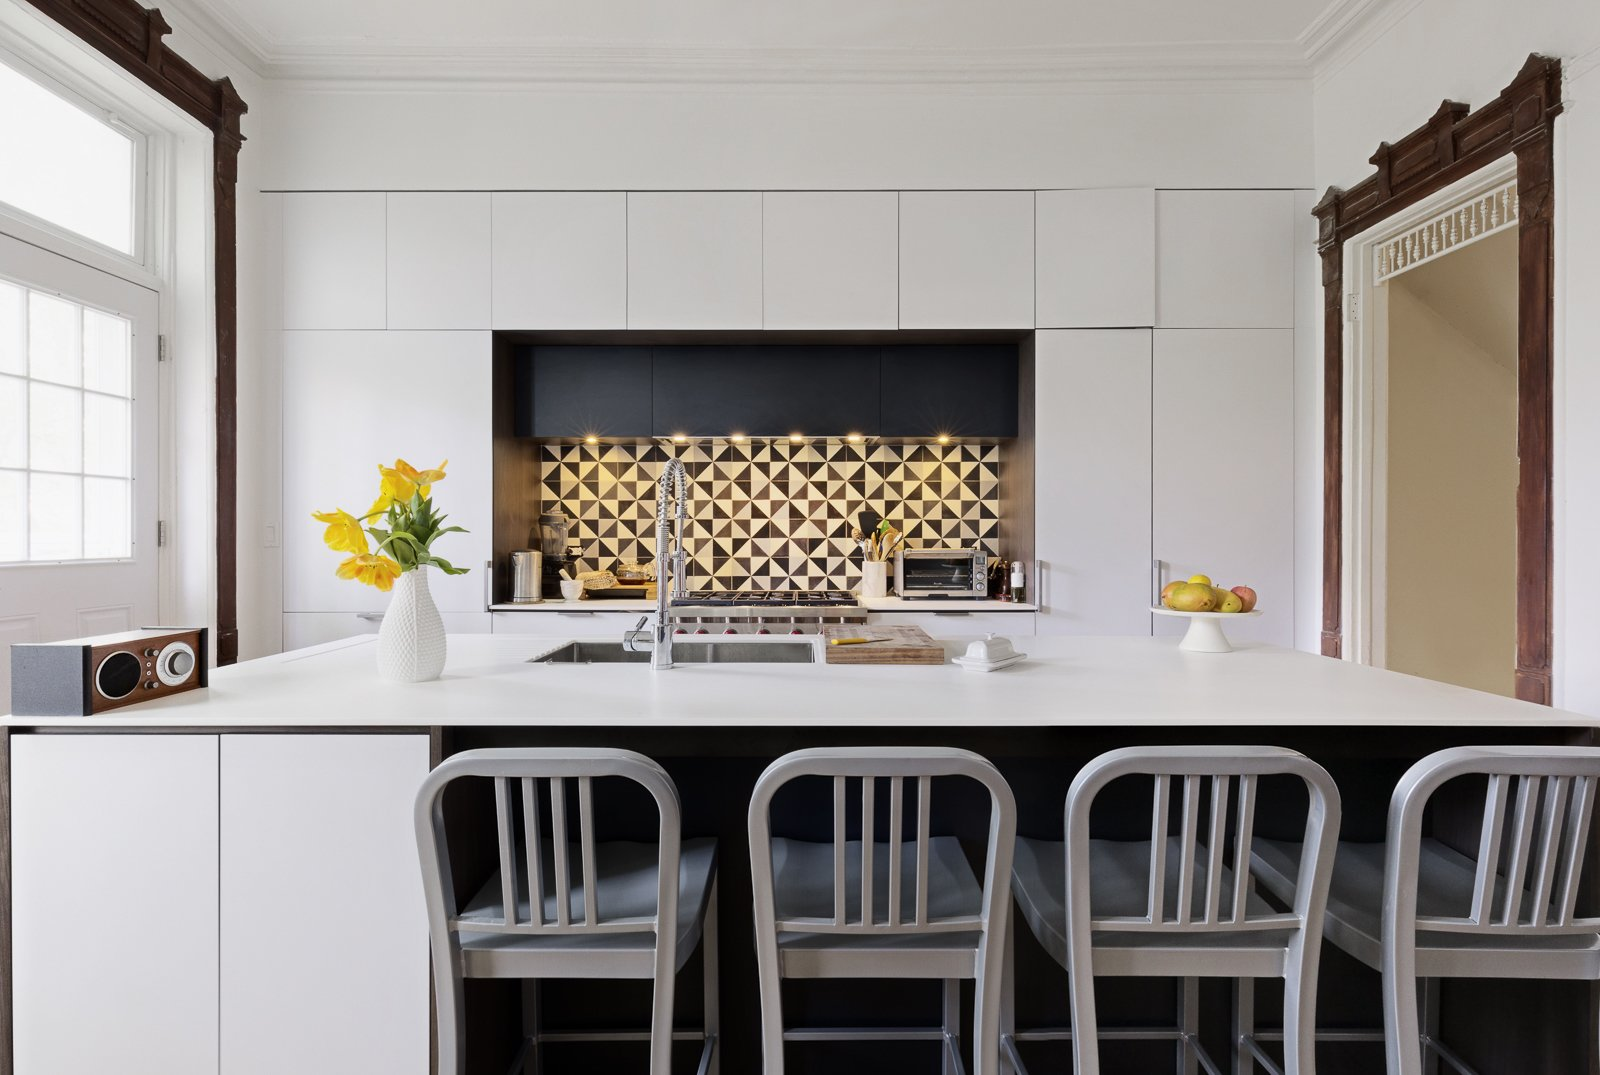 Tagged: Kitchen and White Cabinet.  Best Photos from Creative Townhouse kitchen and bath (Sweeten project)